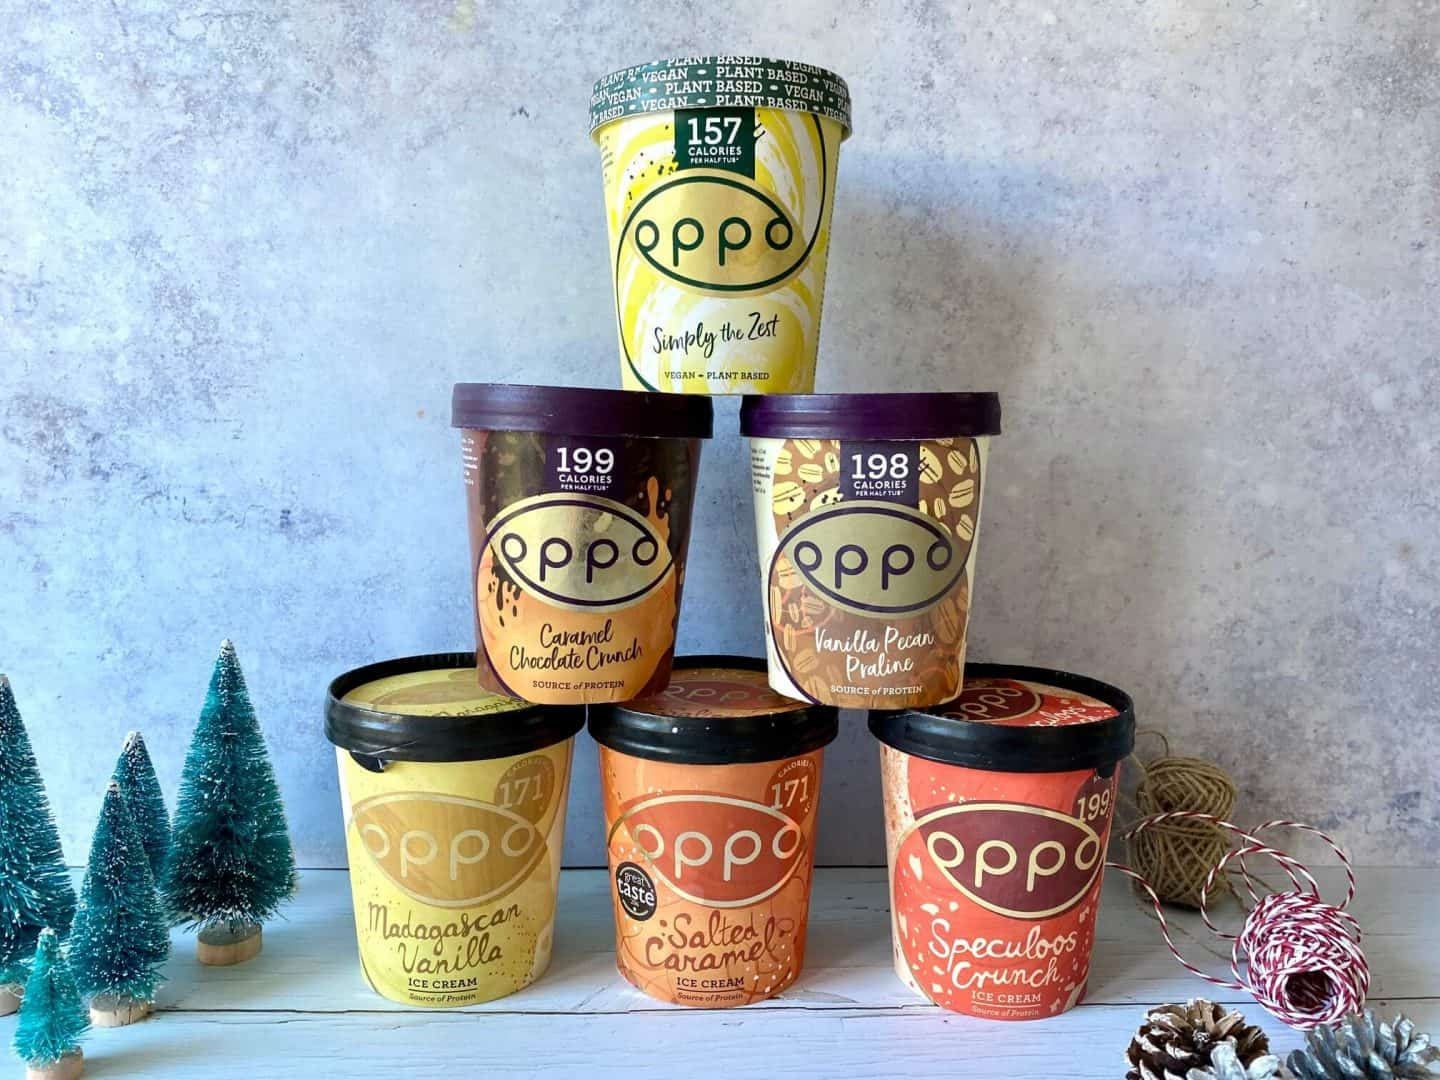 Oppo Ice cream subscription service